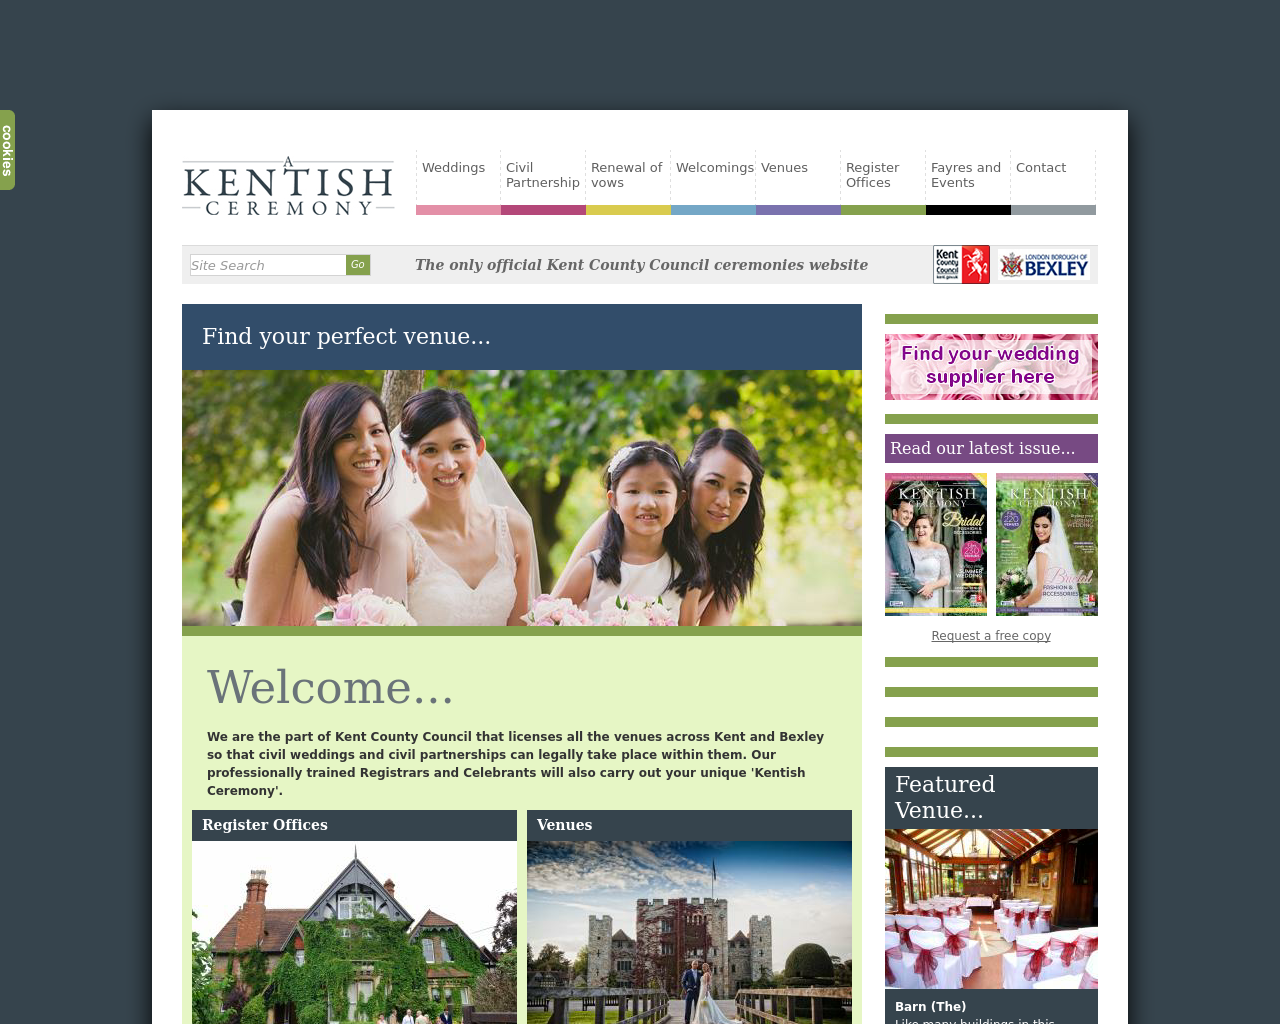 A-Kentish-Ceremony-Advertising-Reviews-Pricing